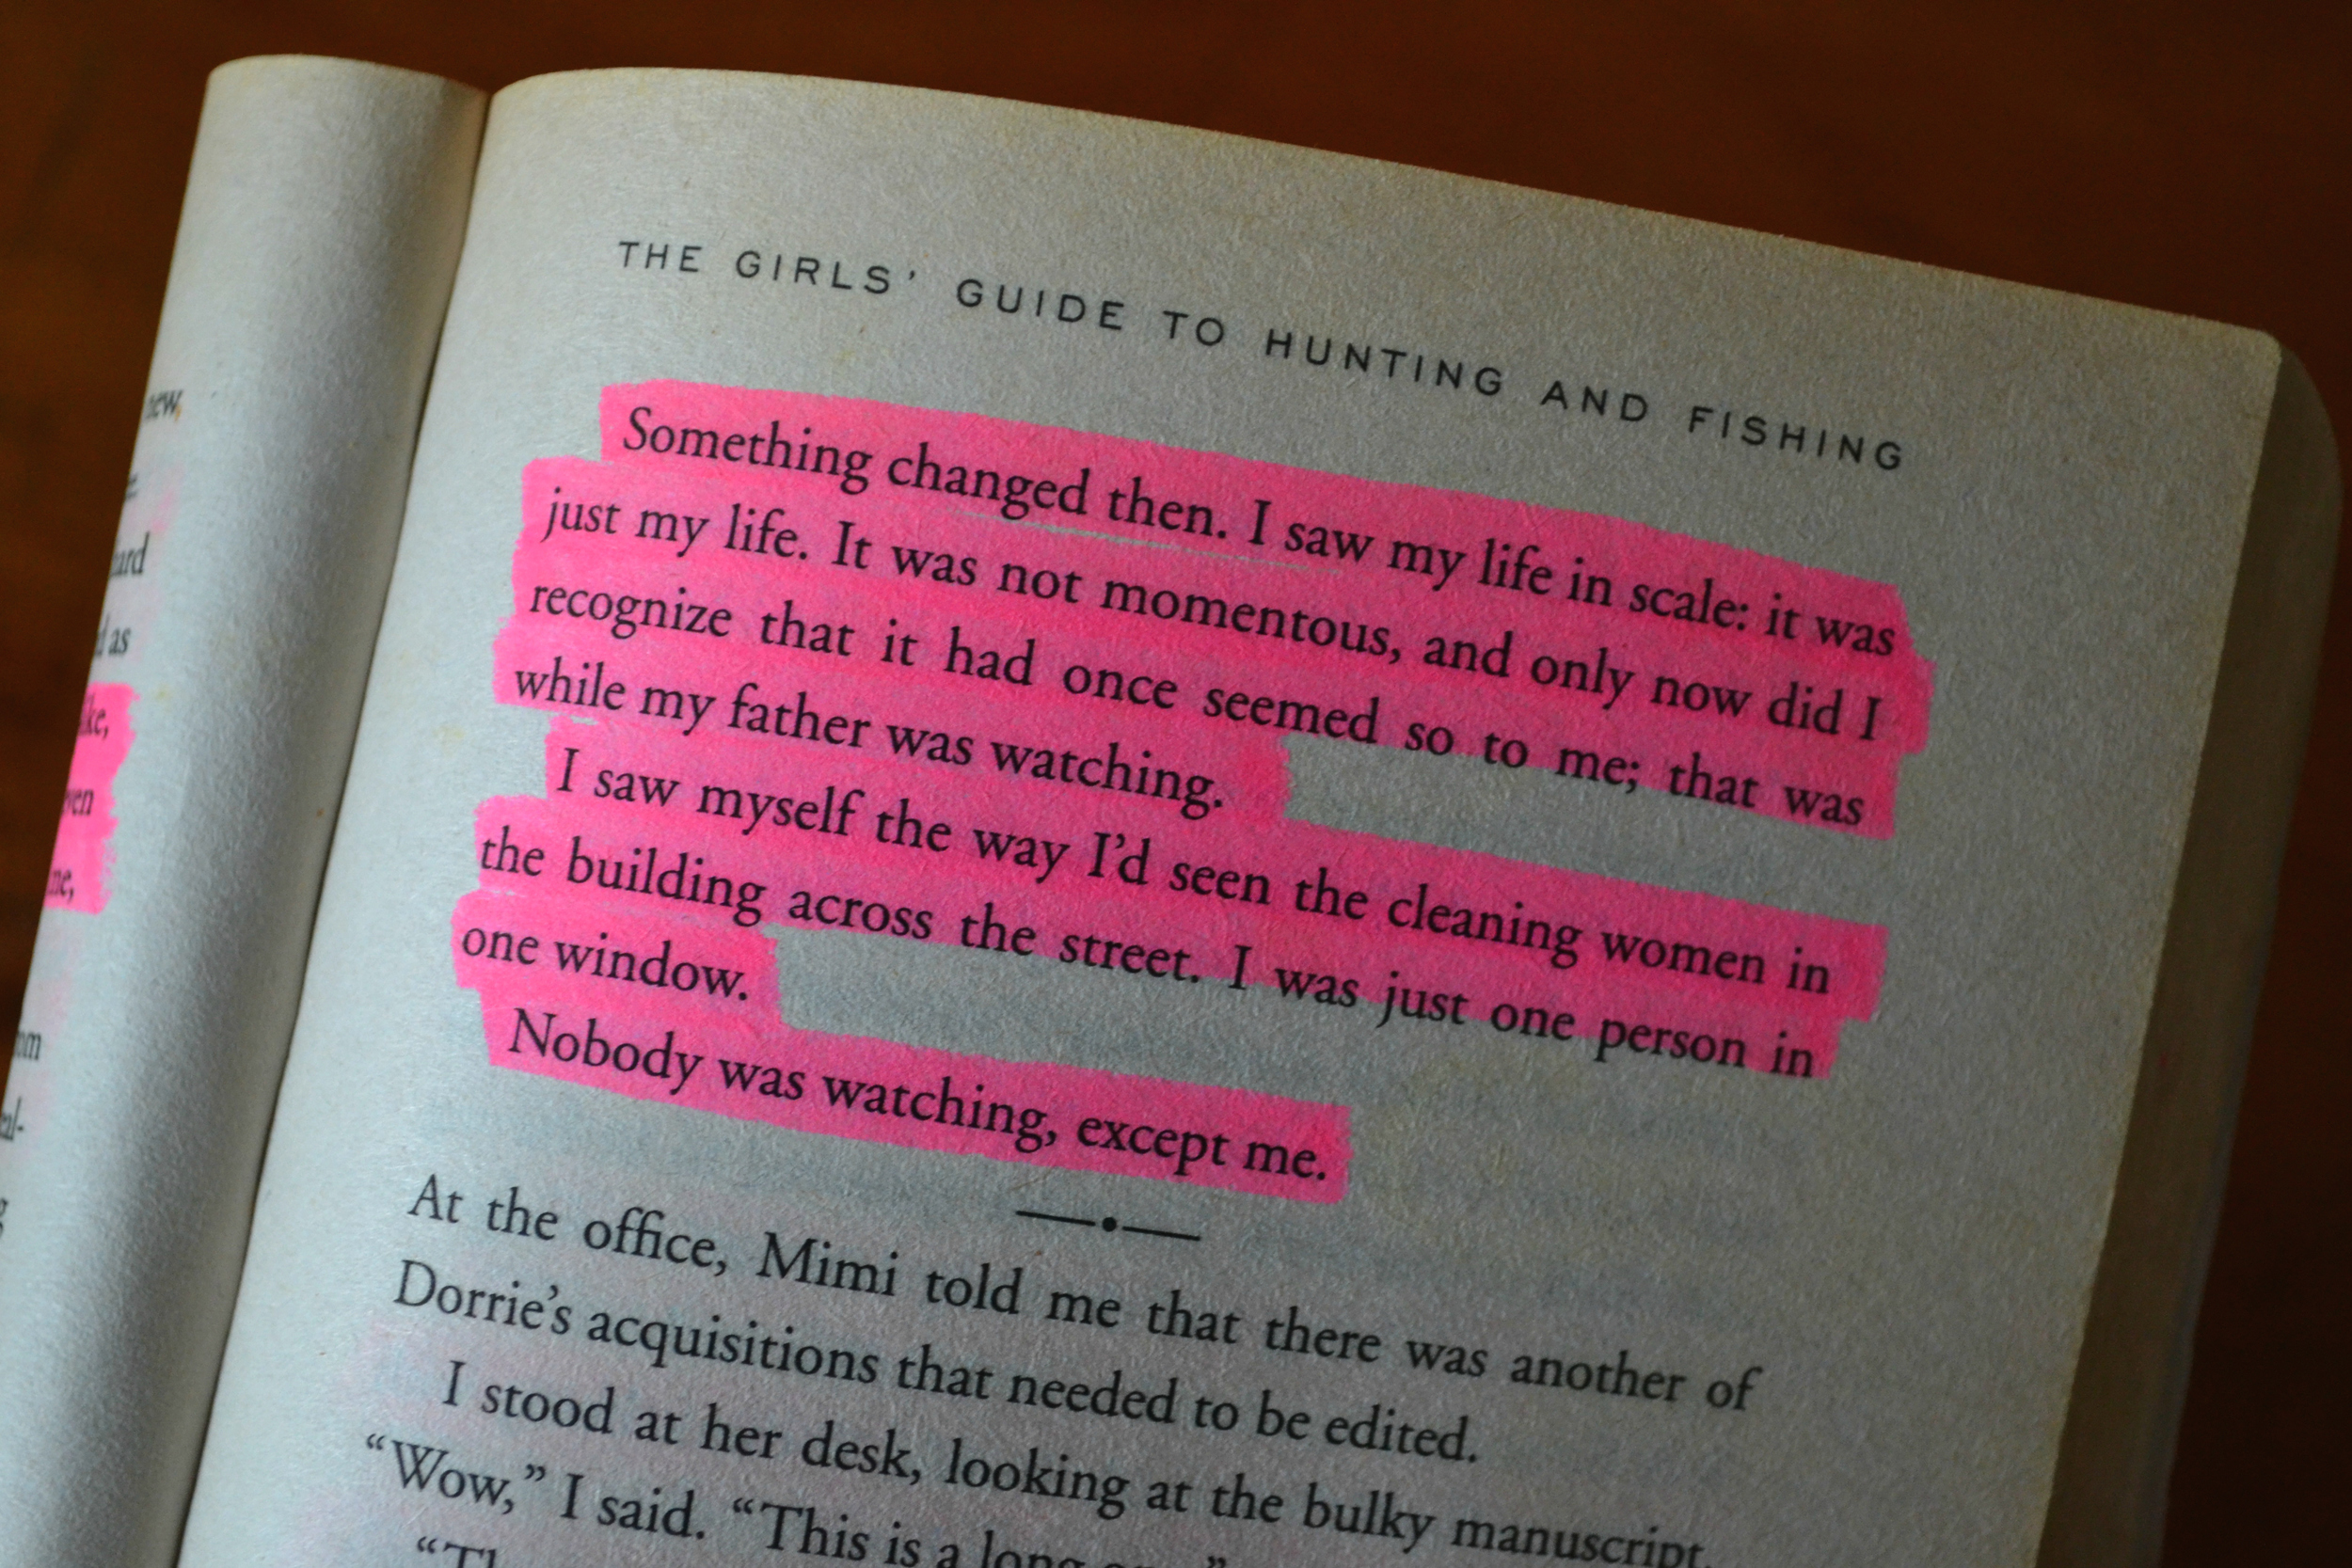 the girls guide to hunting and fishing quote